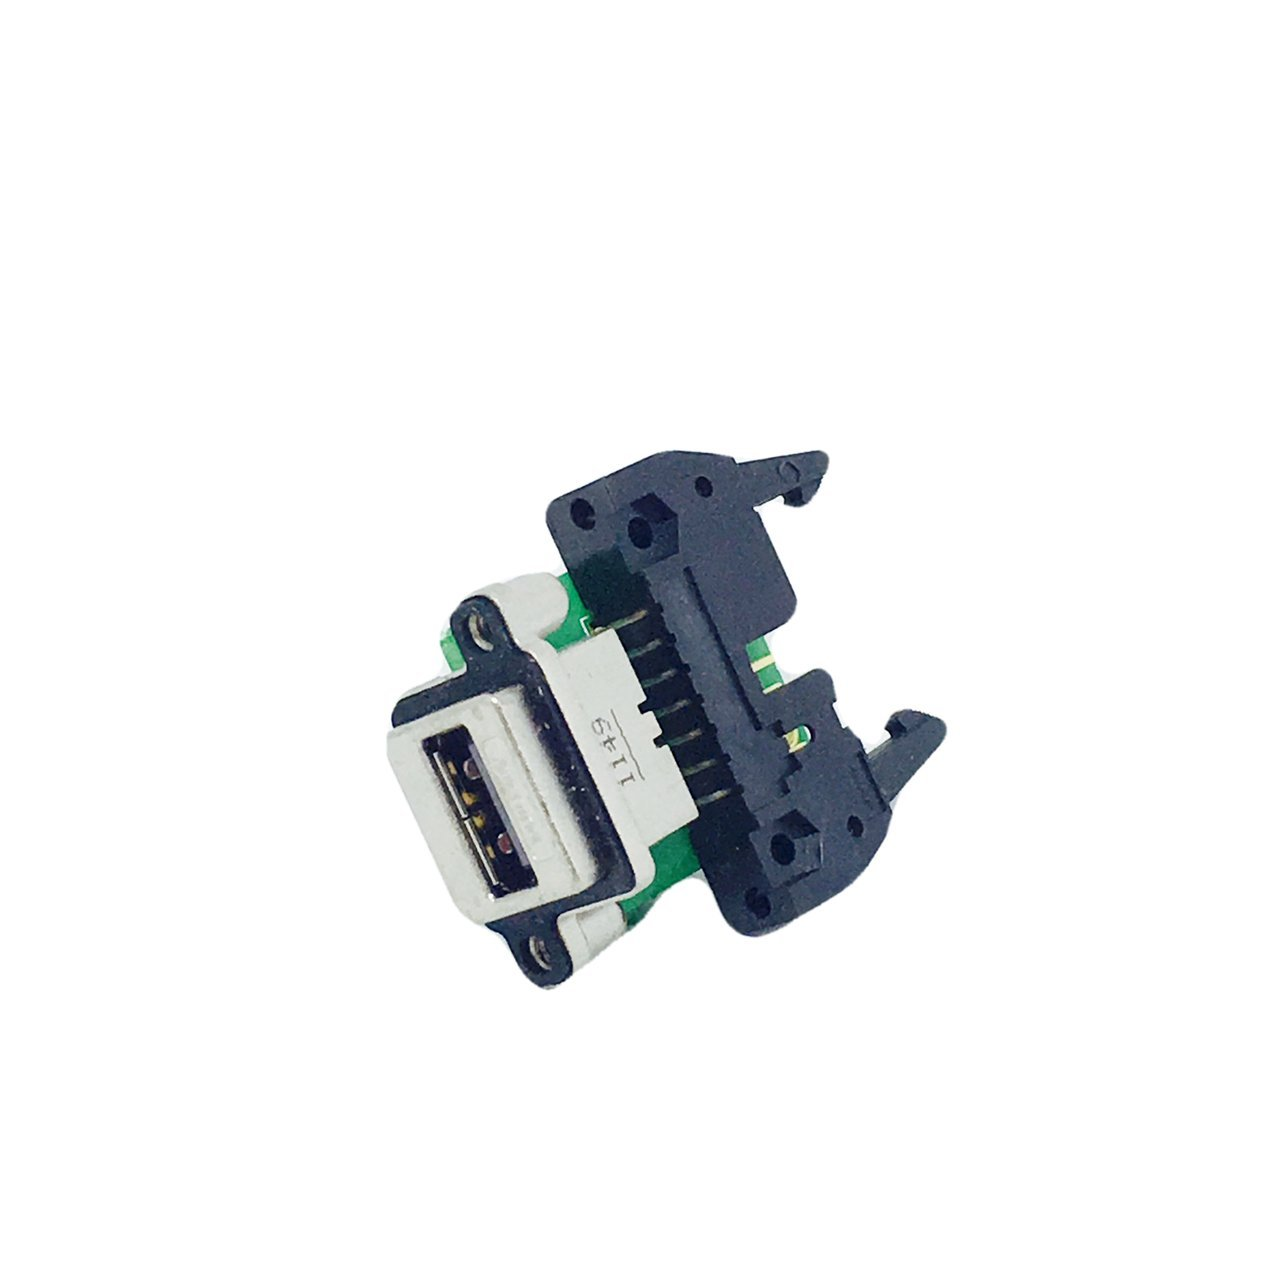 MUSB-A211-30 Amphenol Corporation 4 Position Single Port Socket Right Angle Type A Panel Mount USB